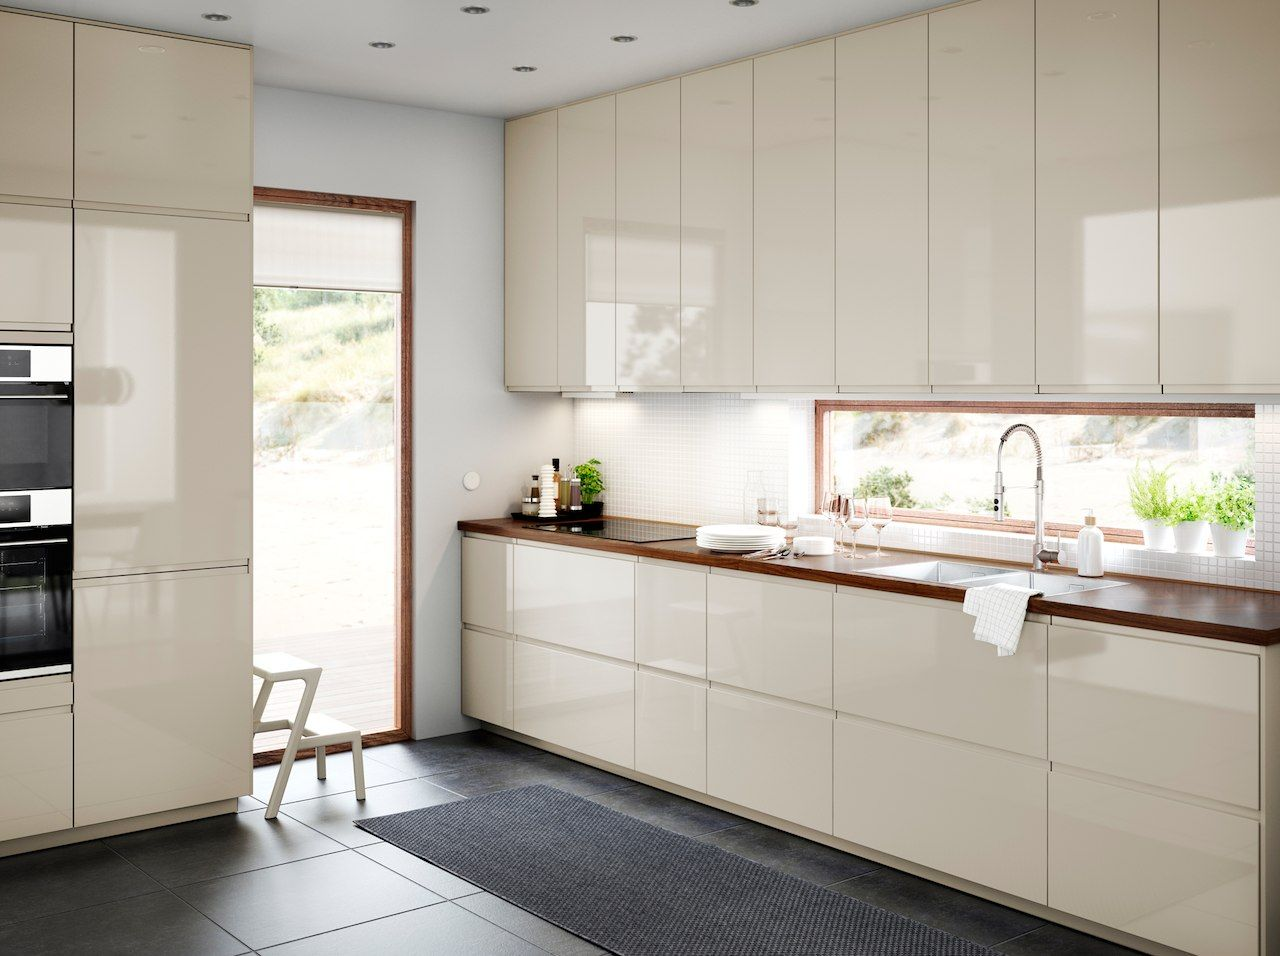 High gloss kitchen for smart and sleek style